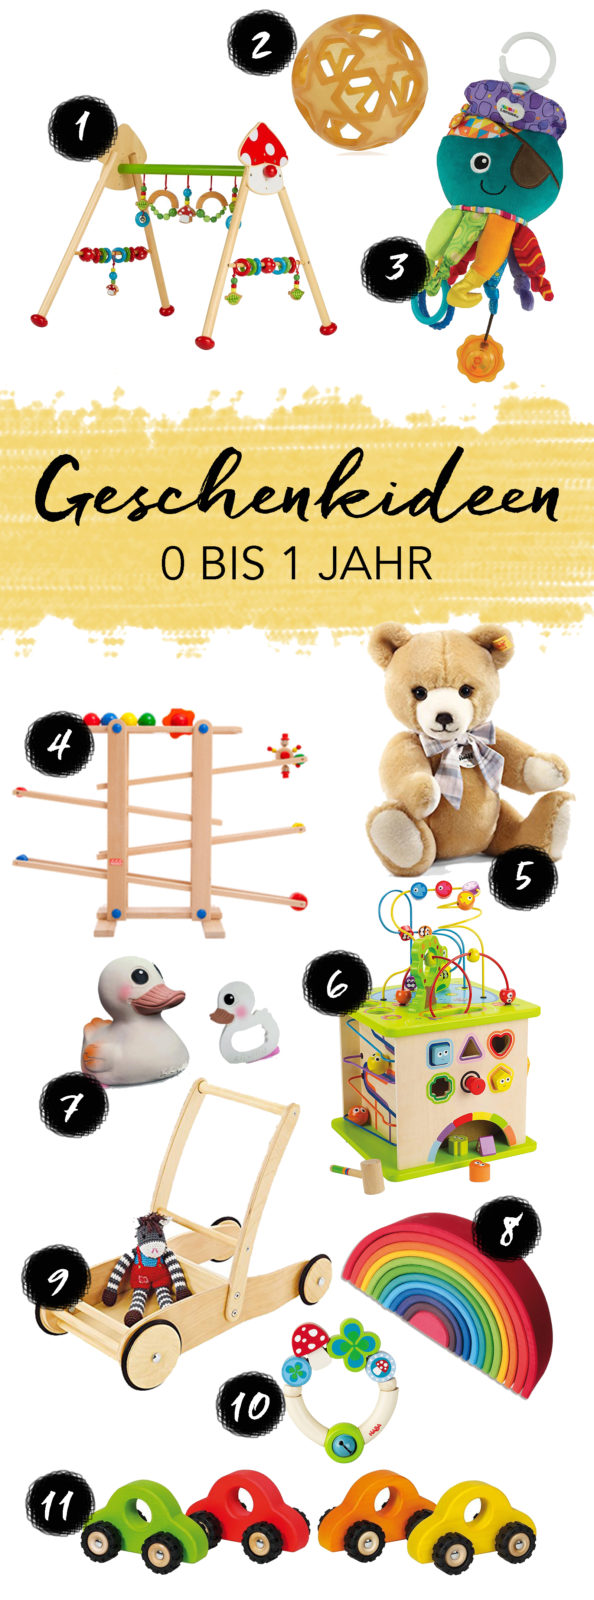 geschenkideen f r babys und kinder im alter von 0 bis 1 jahr geburtstag weihnachten ostern. Black Bedroom Furniture Sets. Home Design Ideas